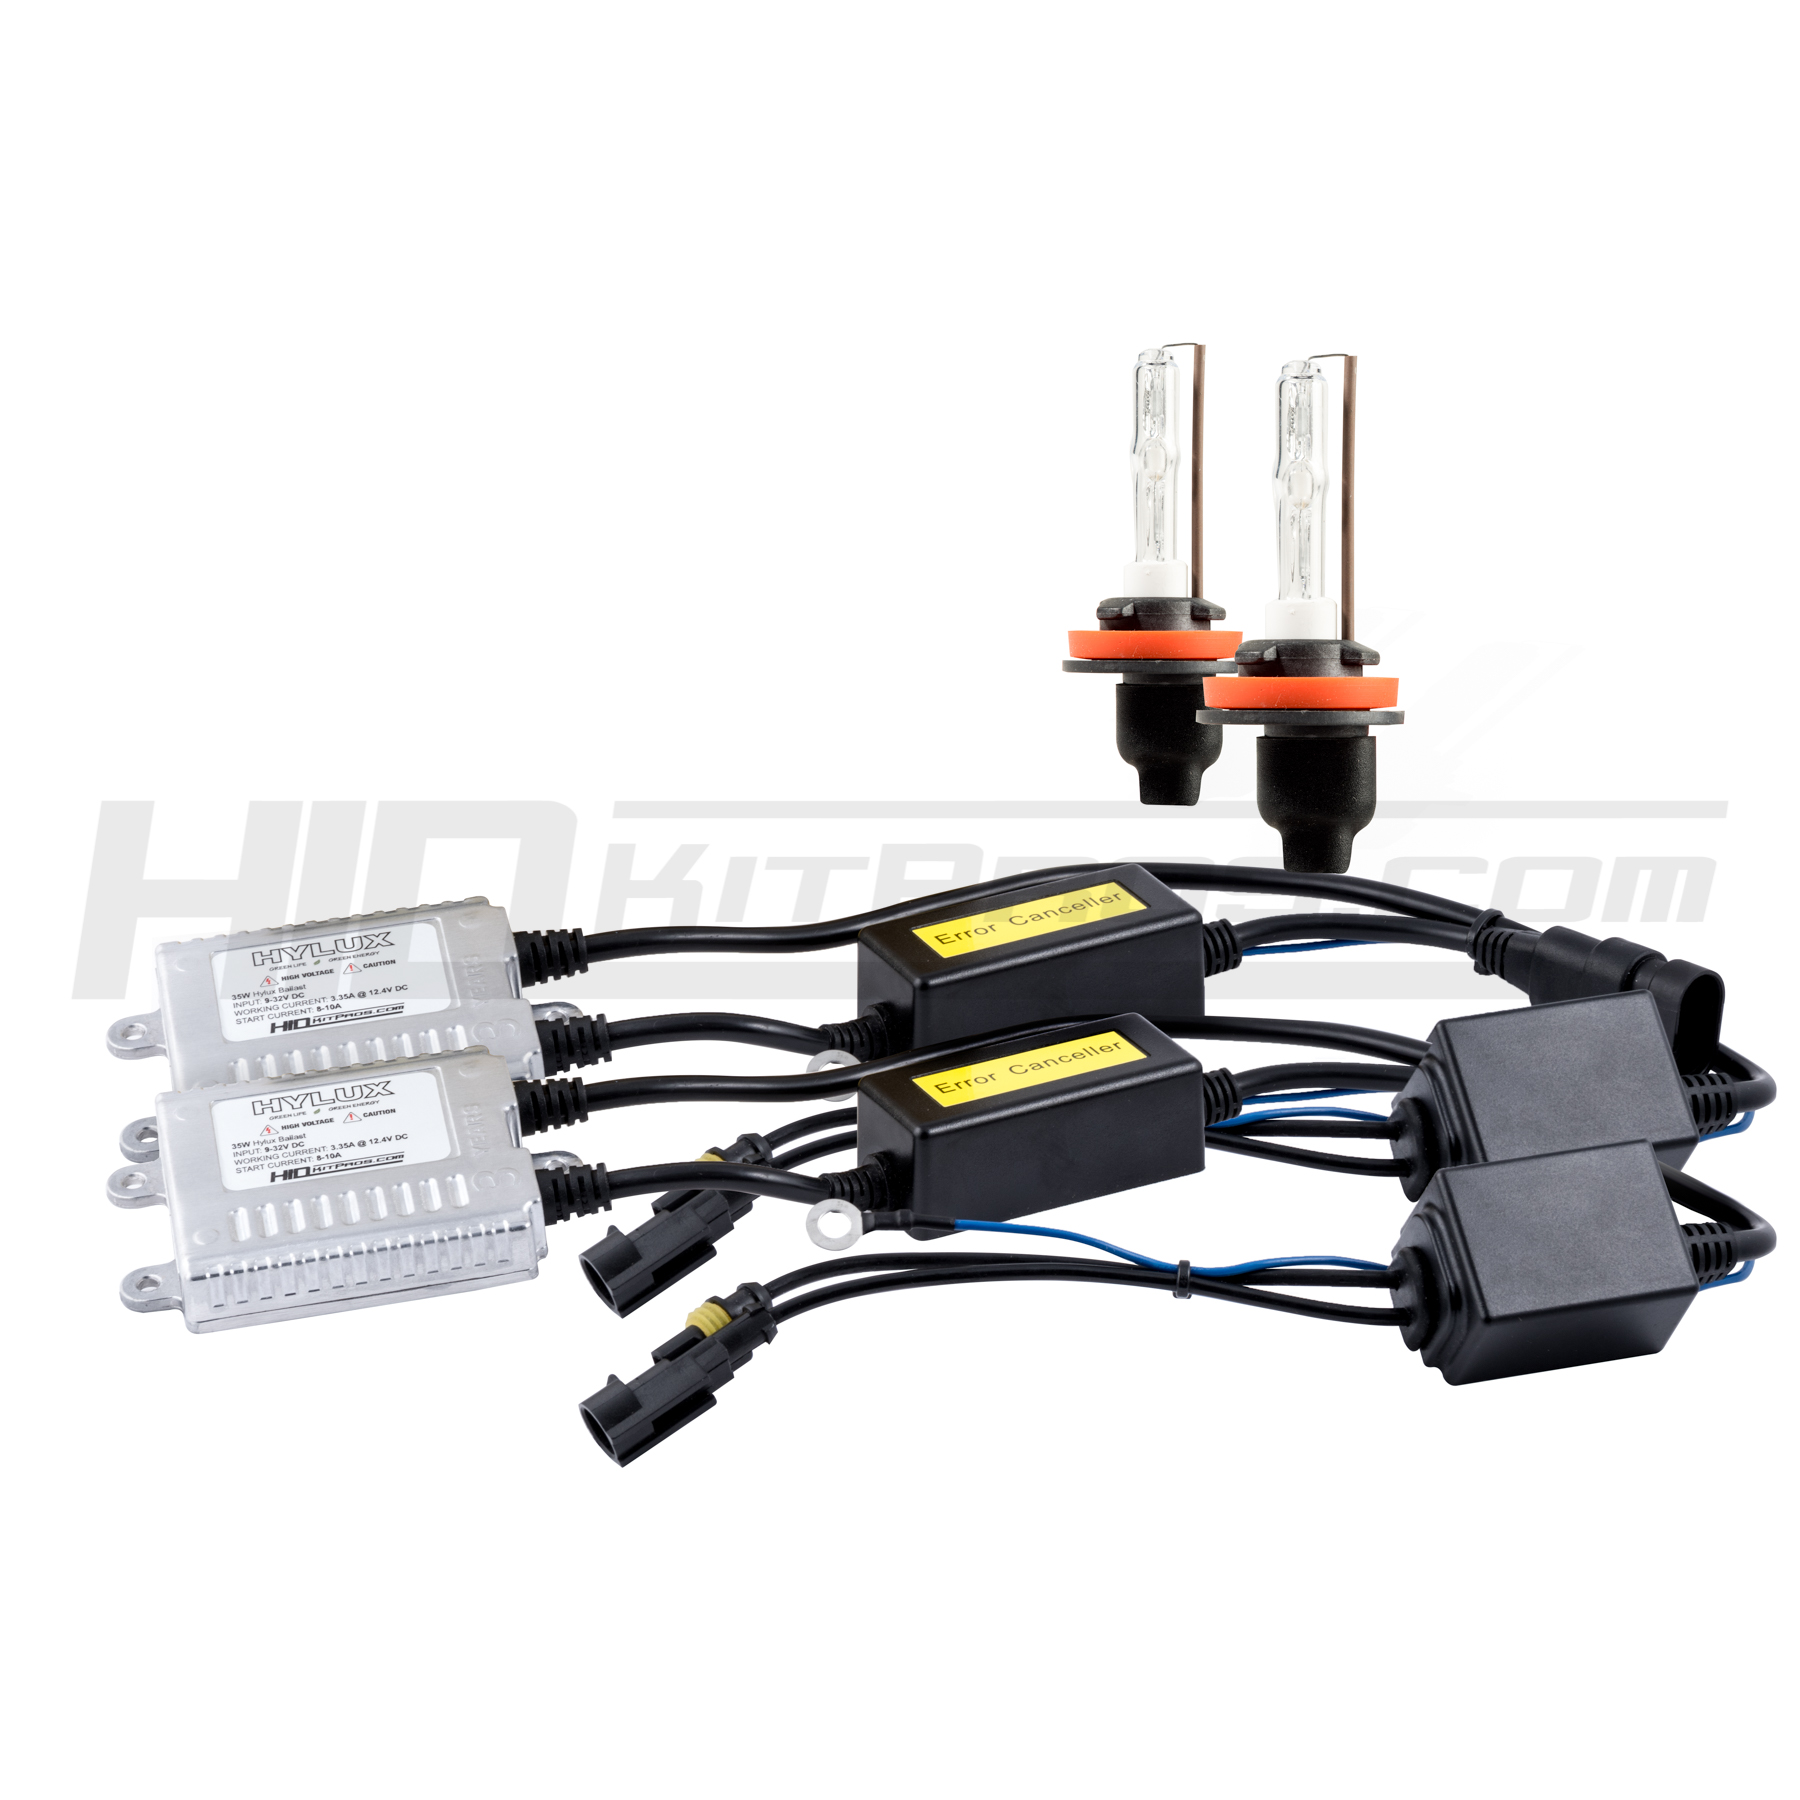 hight resolution of 2009 2019 hyundai santa fe hylux low beam hid kit